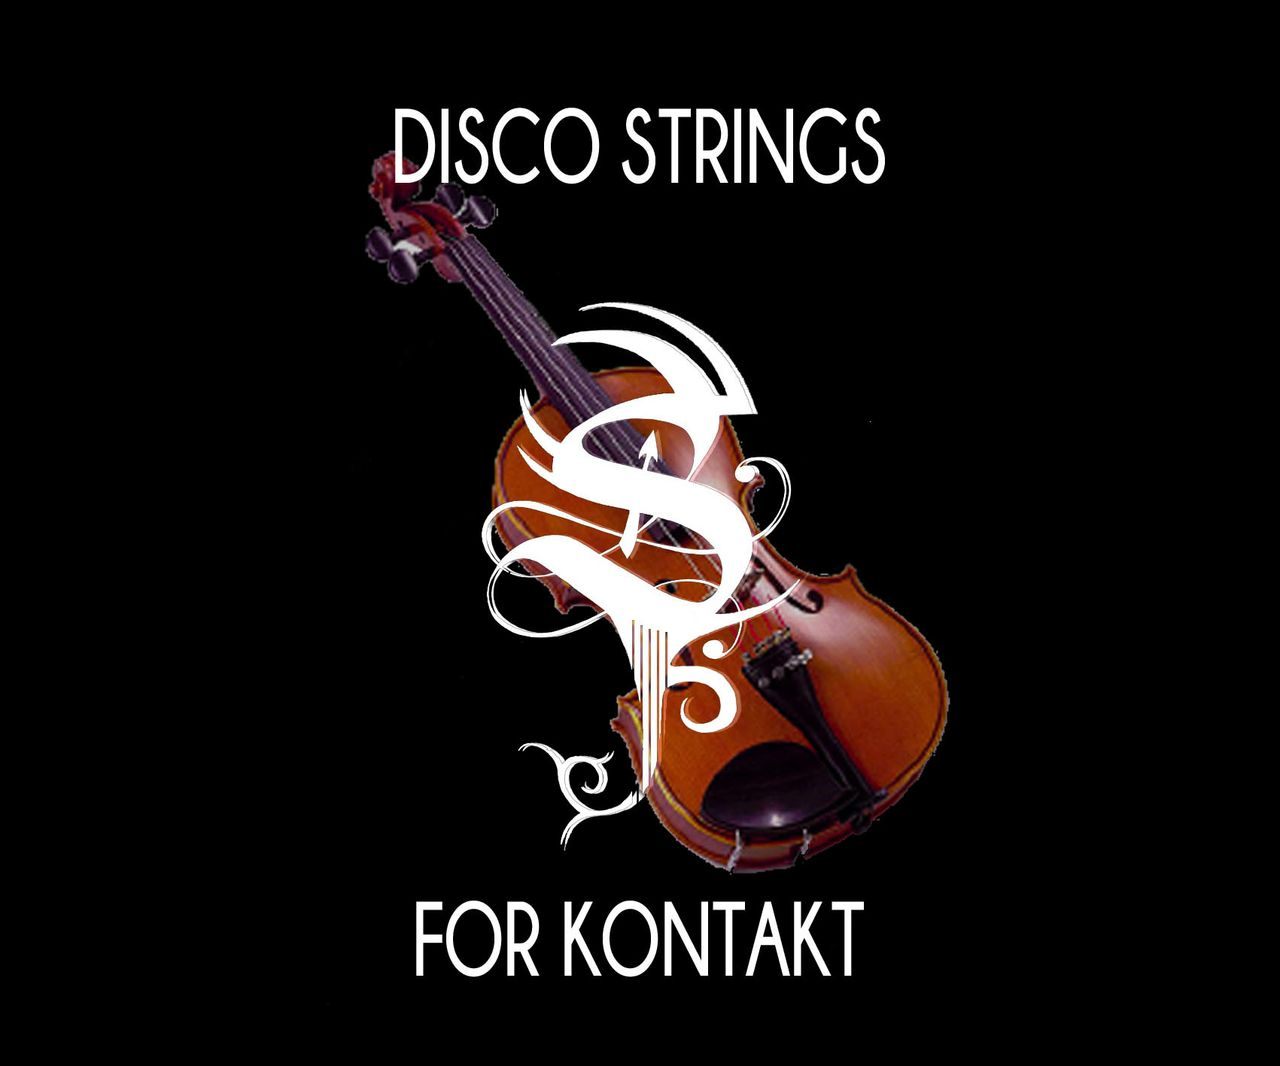 Disco Strings for Kontakt